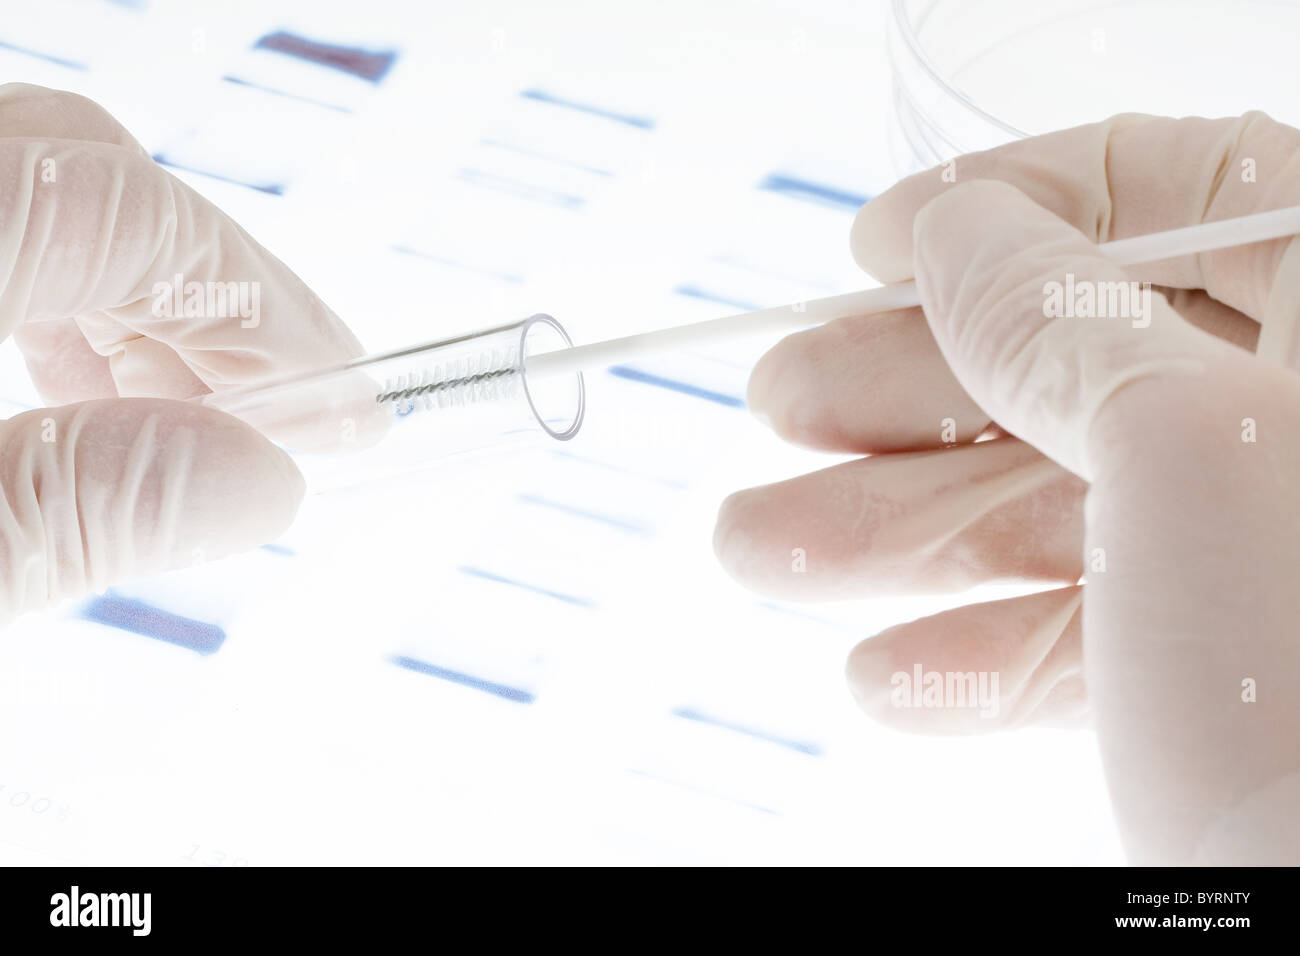 Researcher putting sample of DNA test into a test tube - Stock Image